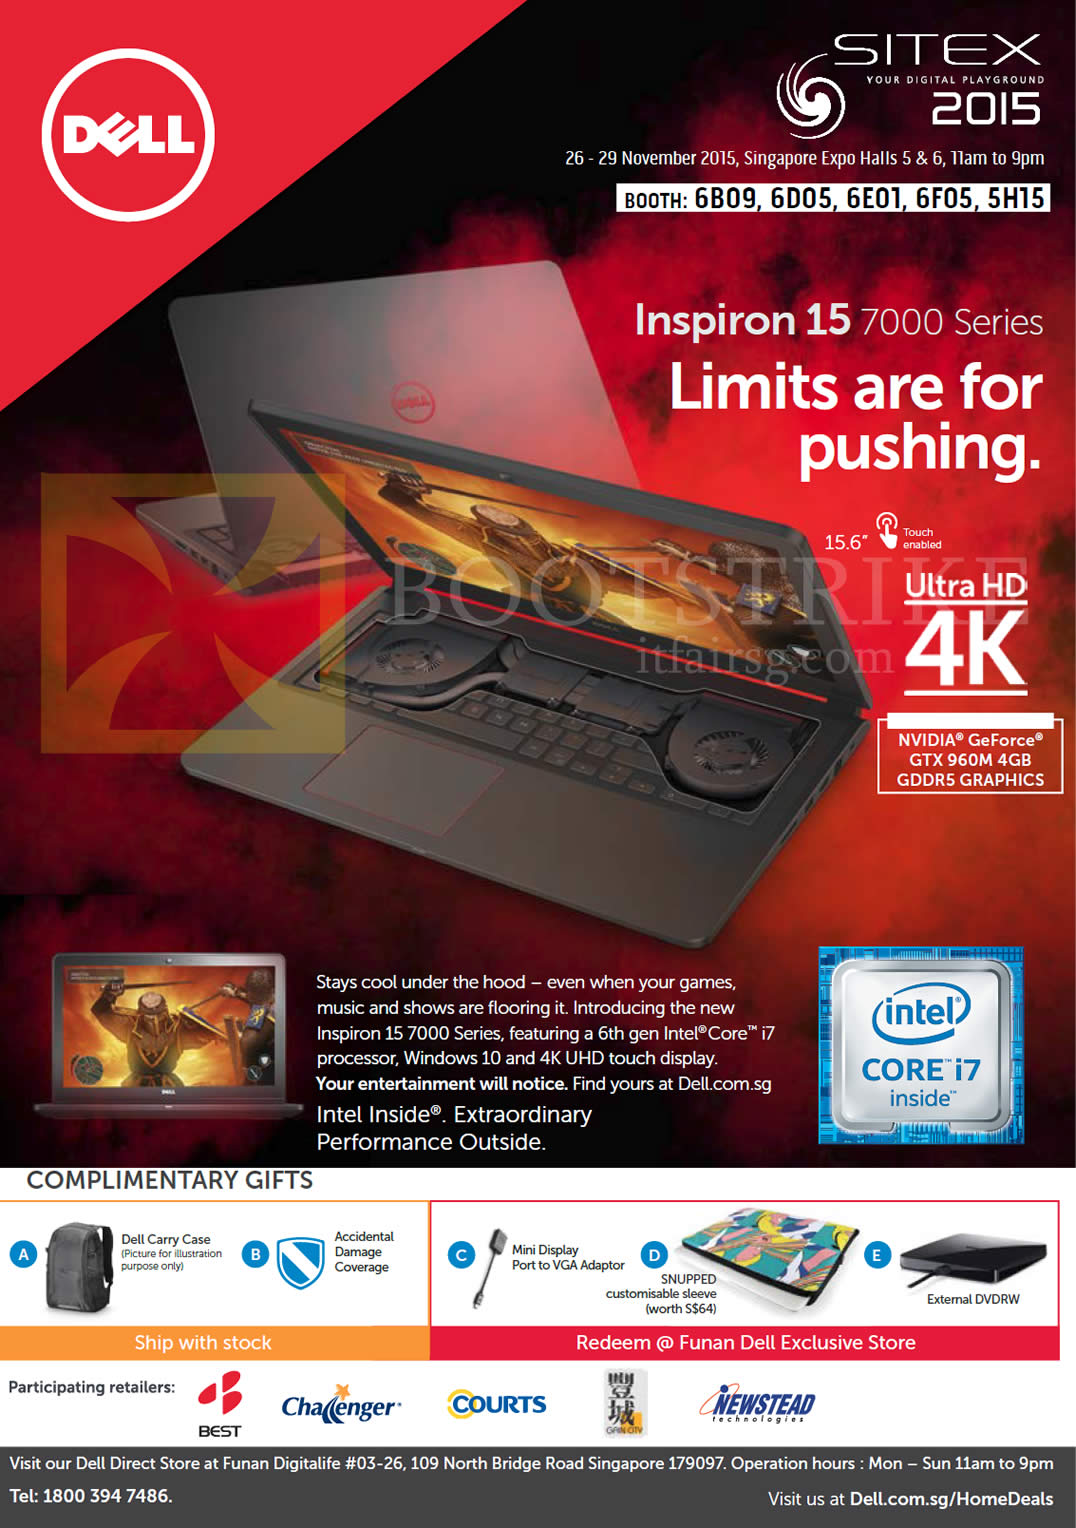 SITEX 2015 price list image brochure of Dell Inspiron 15 7000 Series Notebook, Complimentary Gifts, Dell Carry Case, Accidental Damage Coverage, Mini Display Port To VGA Adaptor, Snupped Customisable Sleeve, External DVDRW